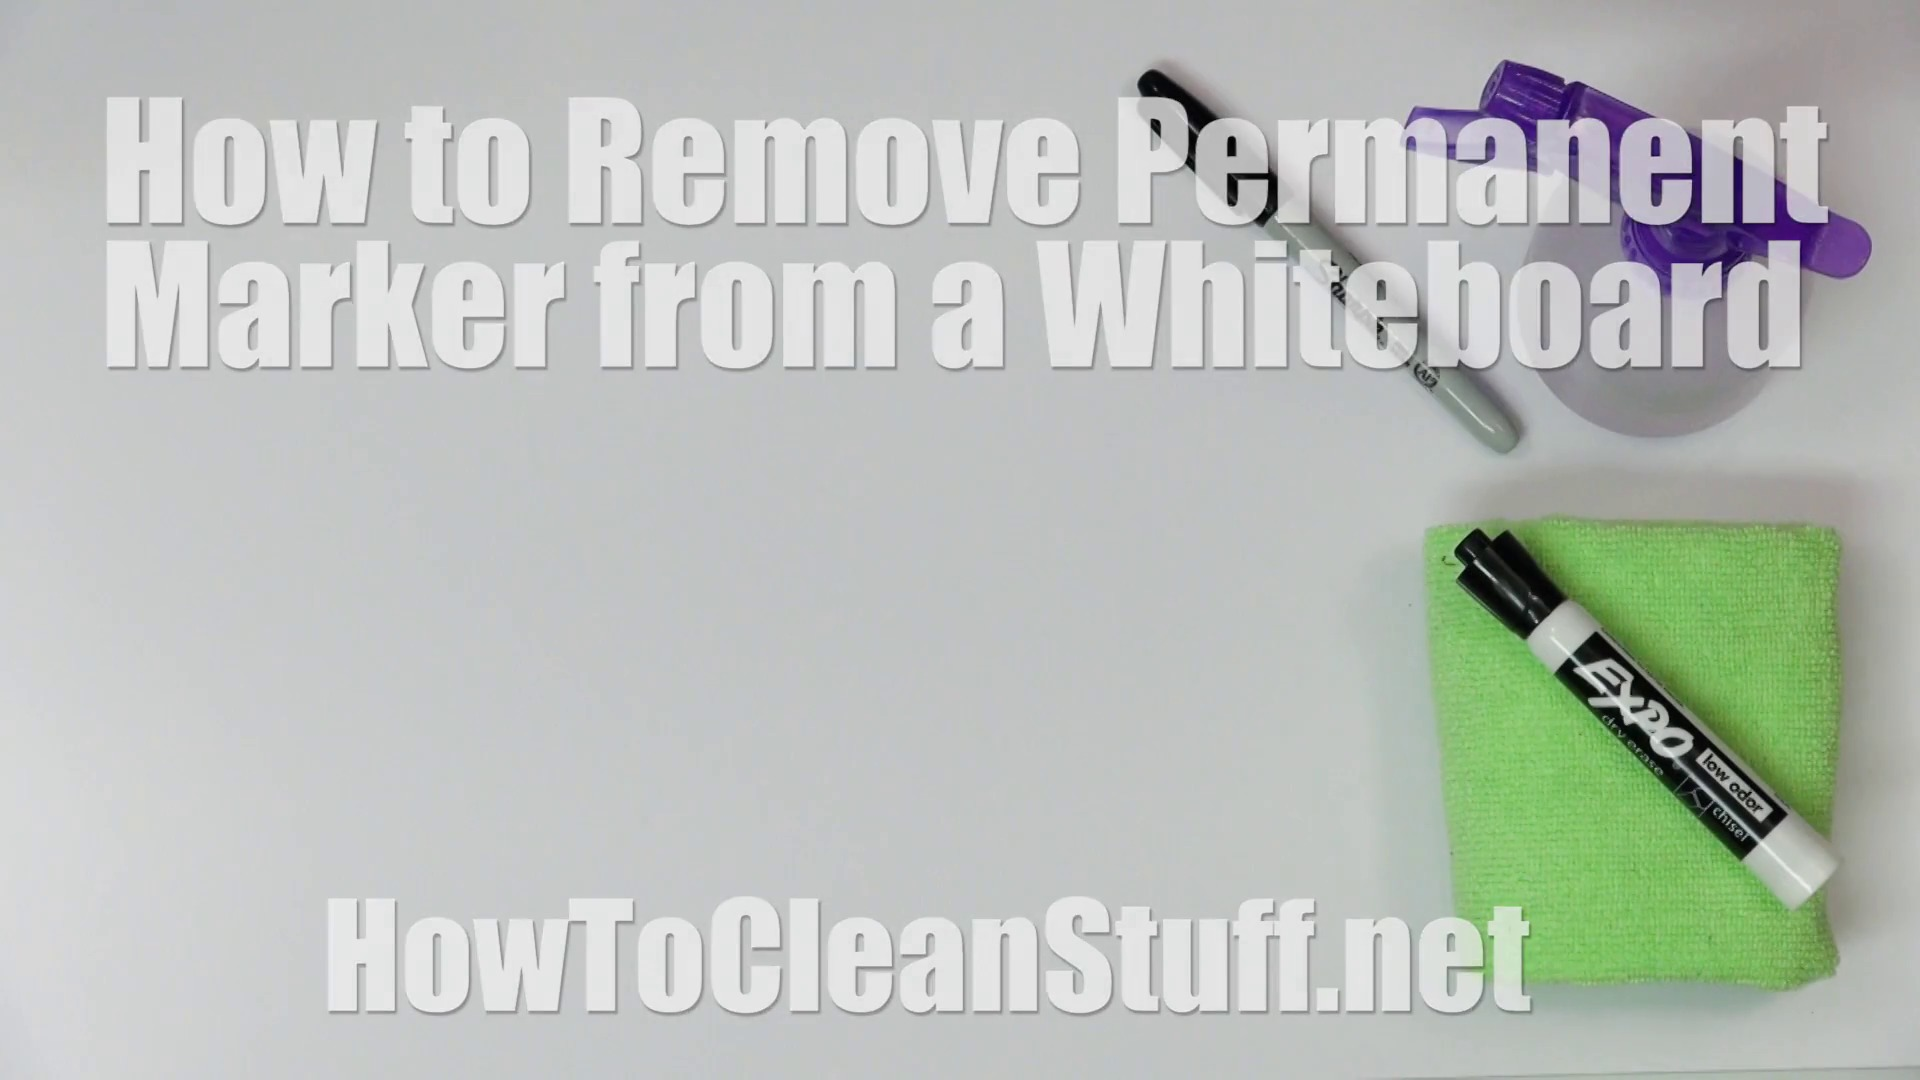 How to Remove Permanent Marker from a Dry Erase Board